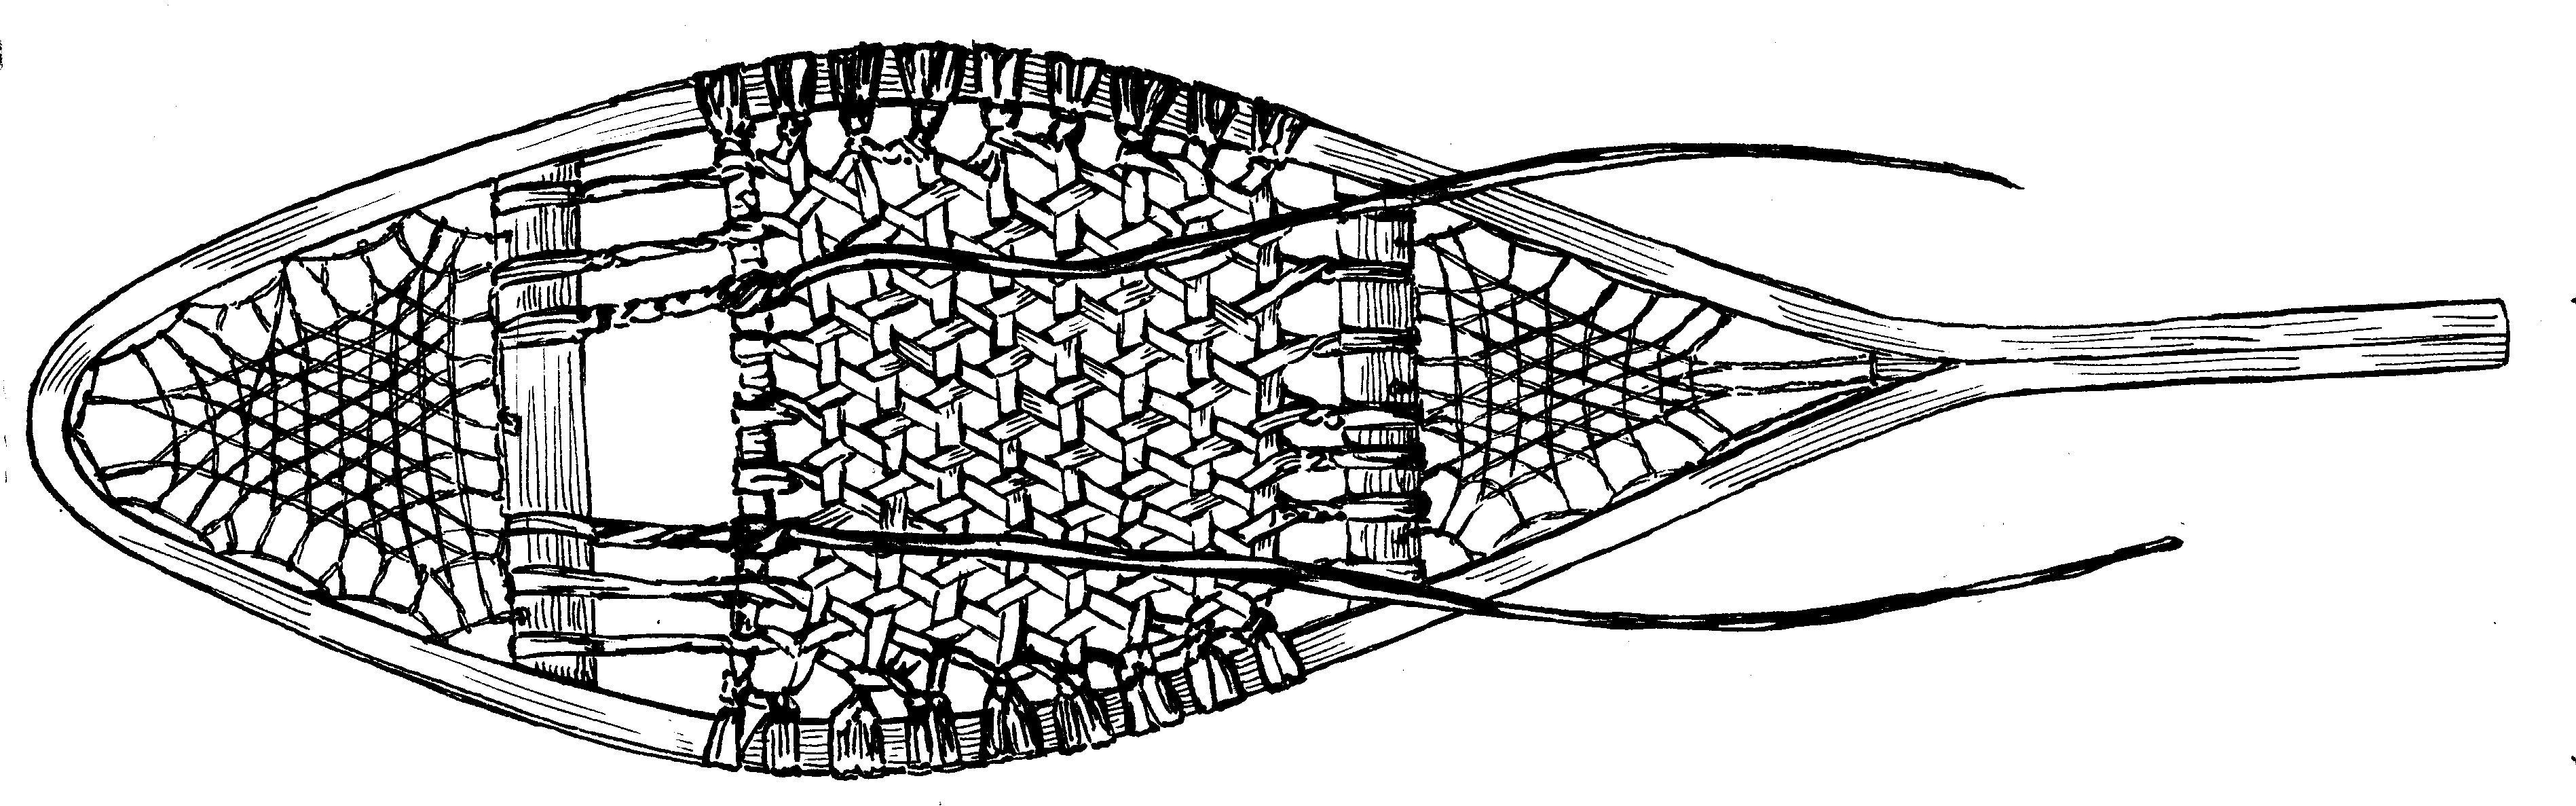 File:Snowshoe 2 (PSF).png - Wikimedia Commons